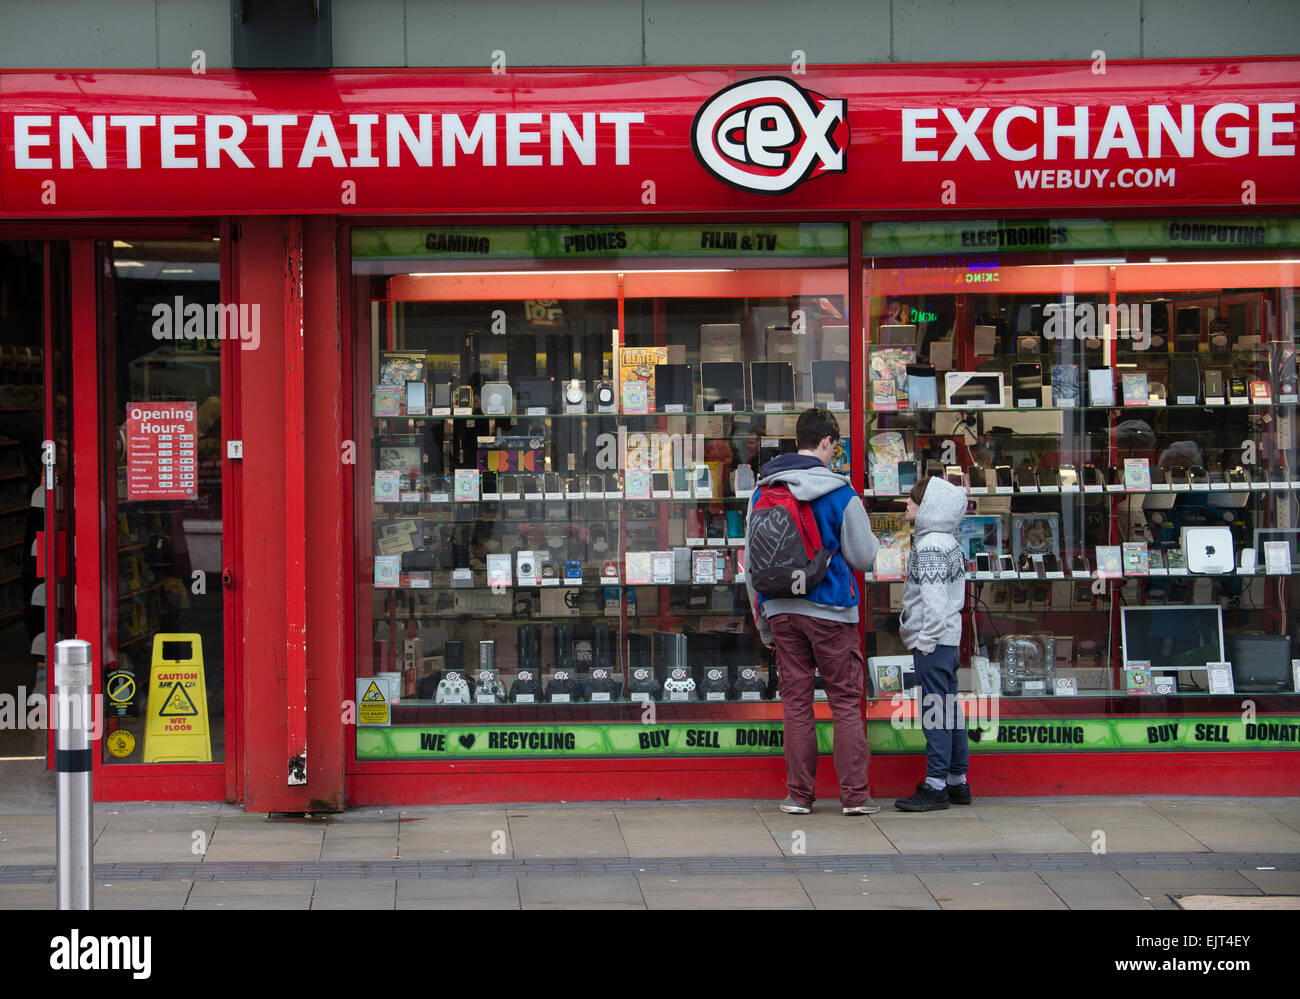 Entertainment Exchange (webuy.com) tienda Swansea Wales UK Imagen De Stock